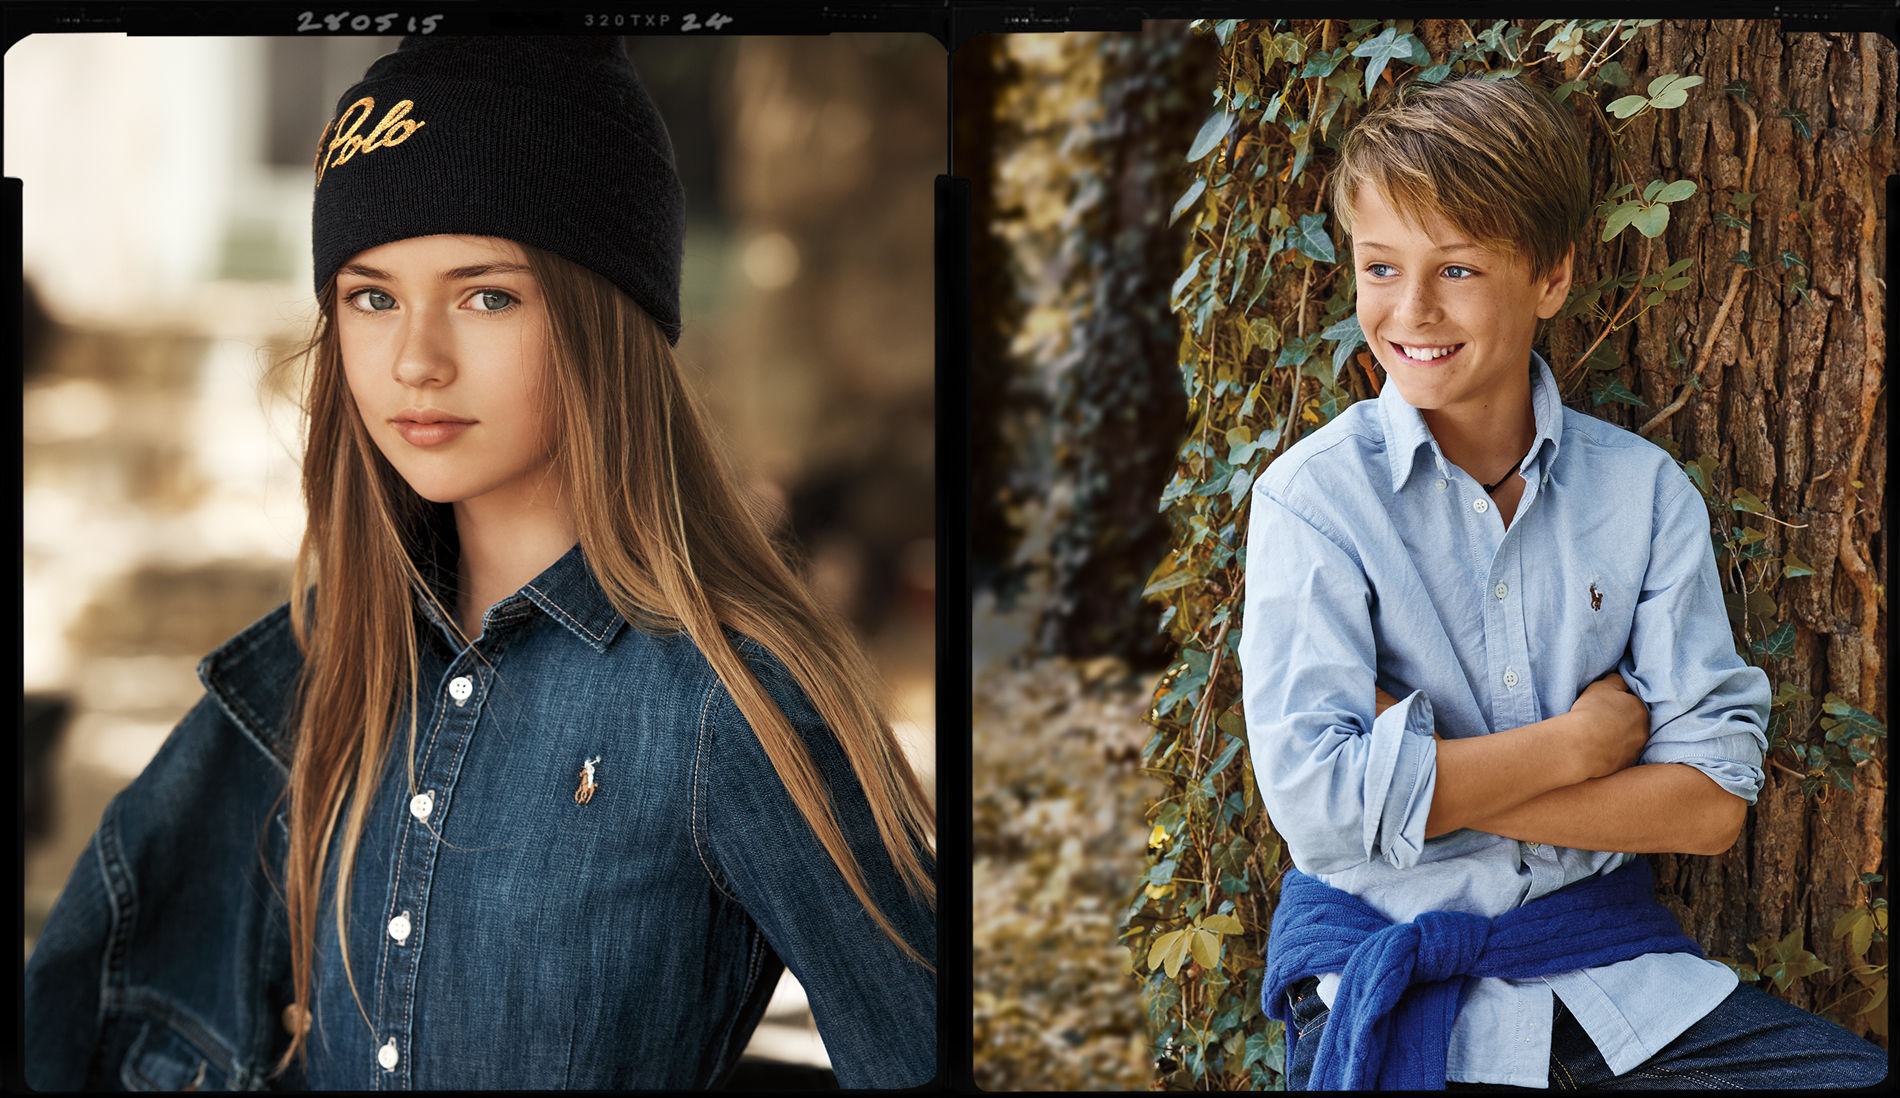 Girl wears knit black Polo hat; boy in light blue oxford shirt